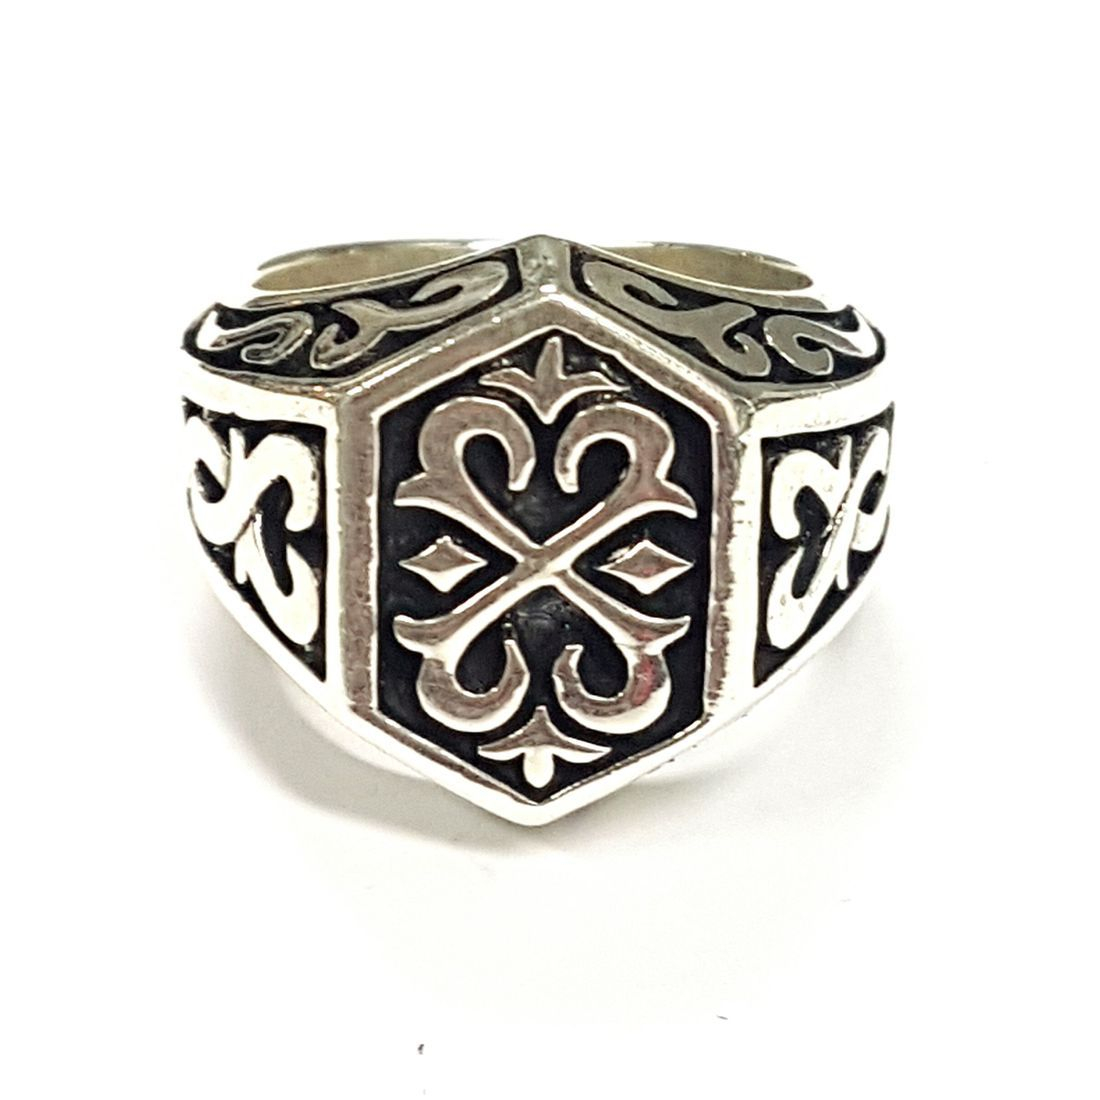 Solid Silver Decorative Ring  available at Kazbah online and our Leicester City Centre shop